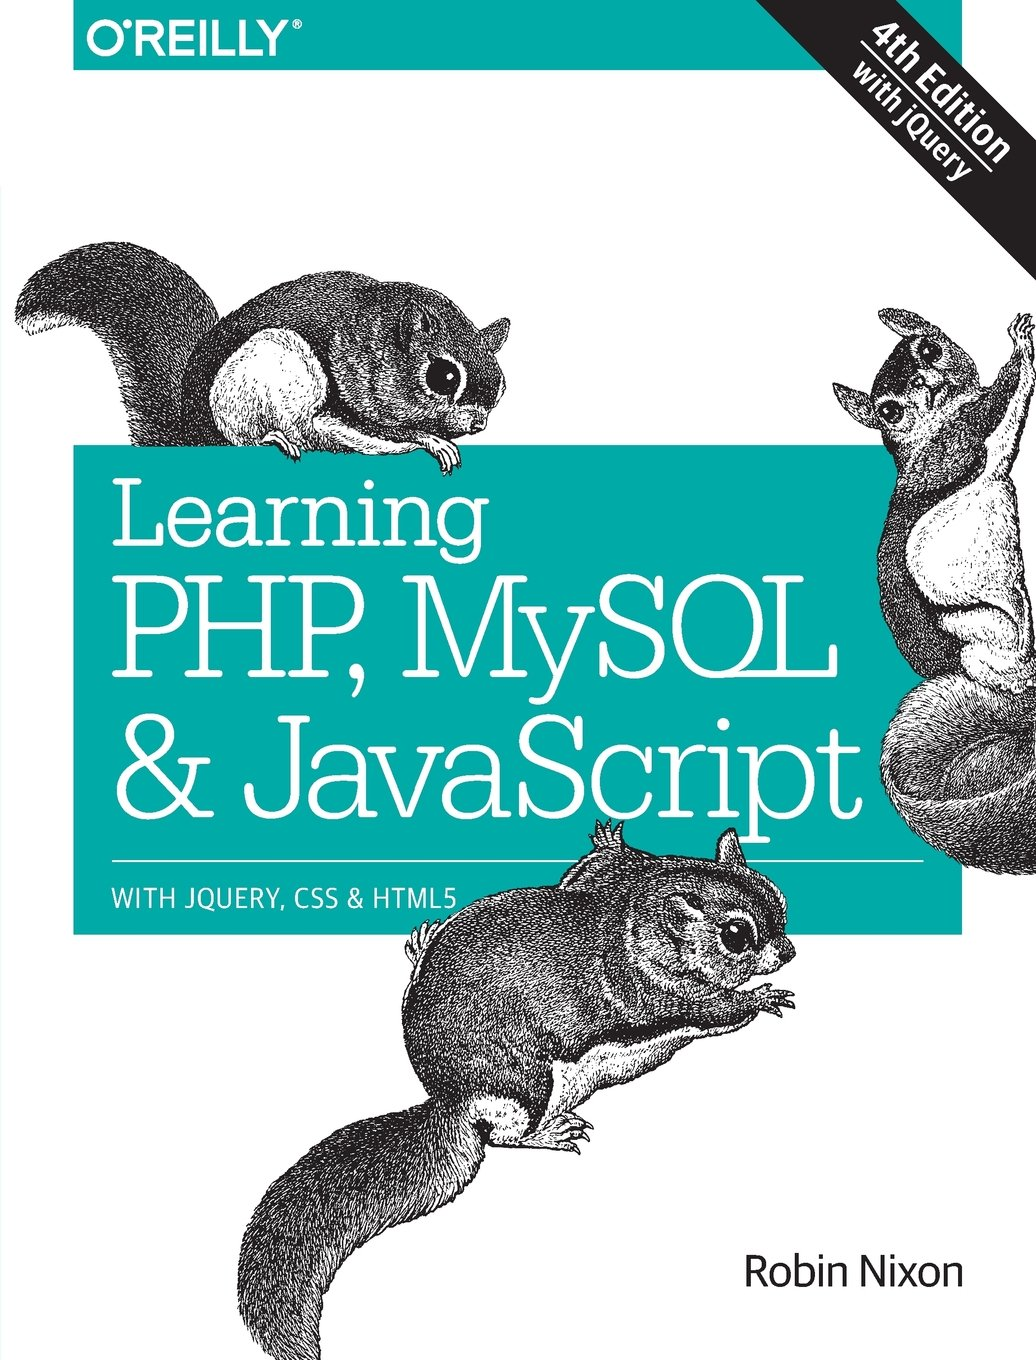 Learning PHP, MySQL & JavaScript: With jQuery, CSS & HTML5 (Learning Php, Mysql, Javascript, Css & Html5) by O Reilly Media